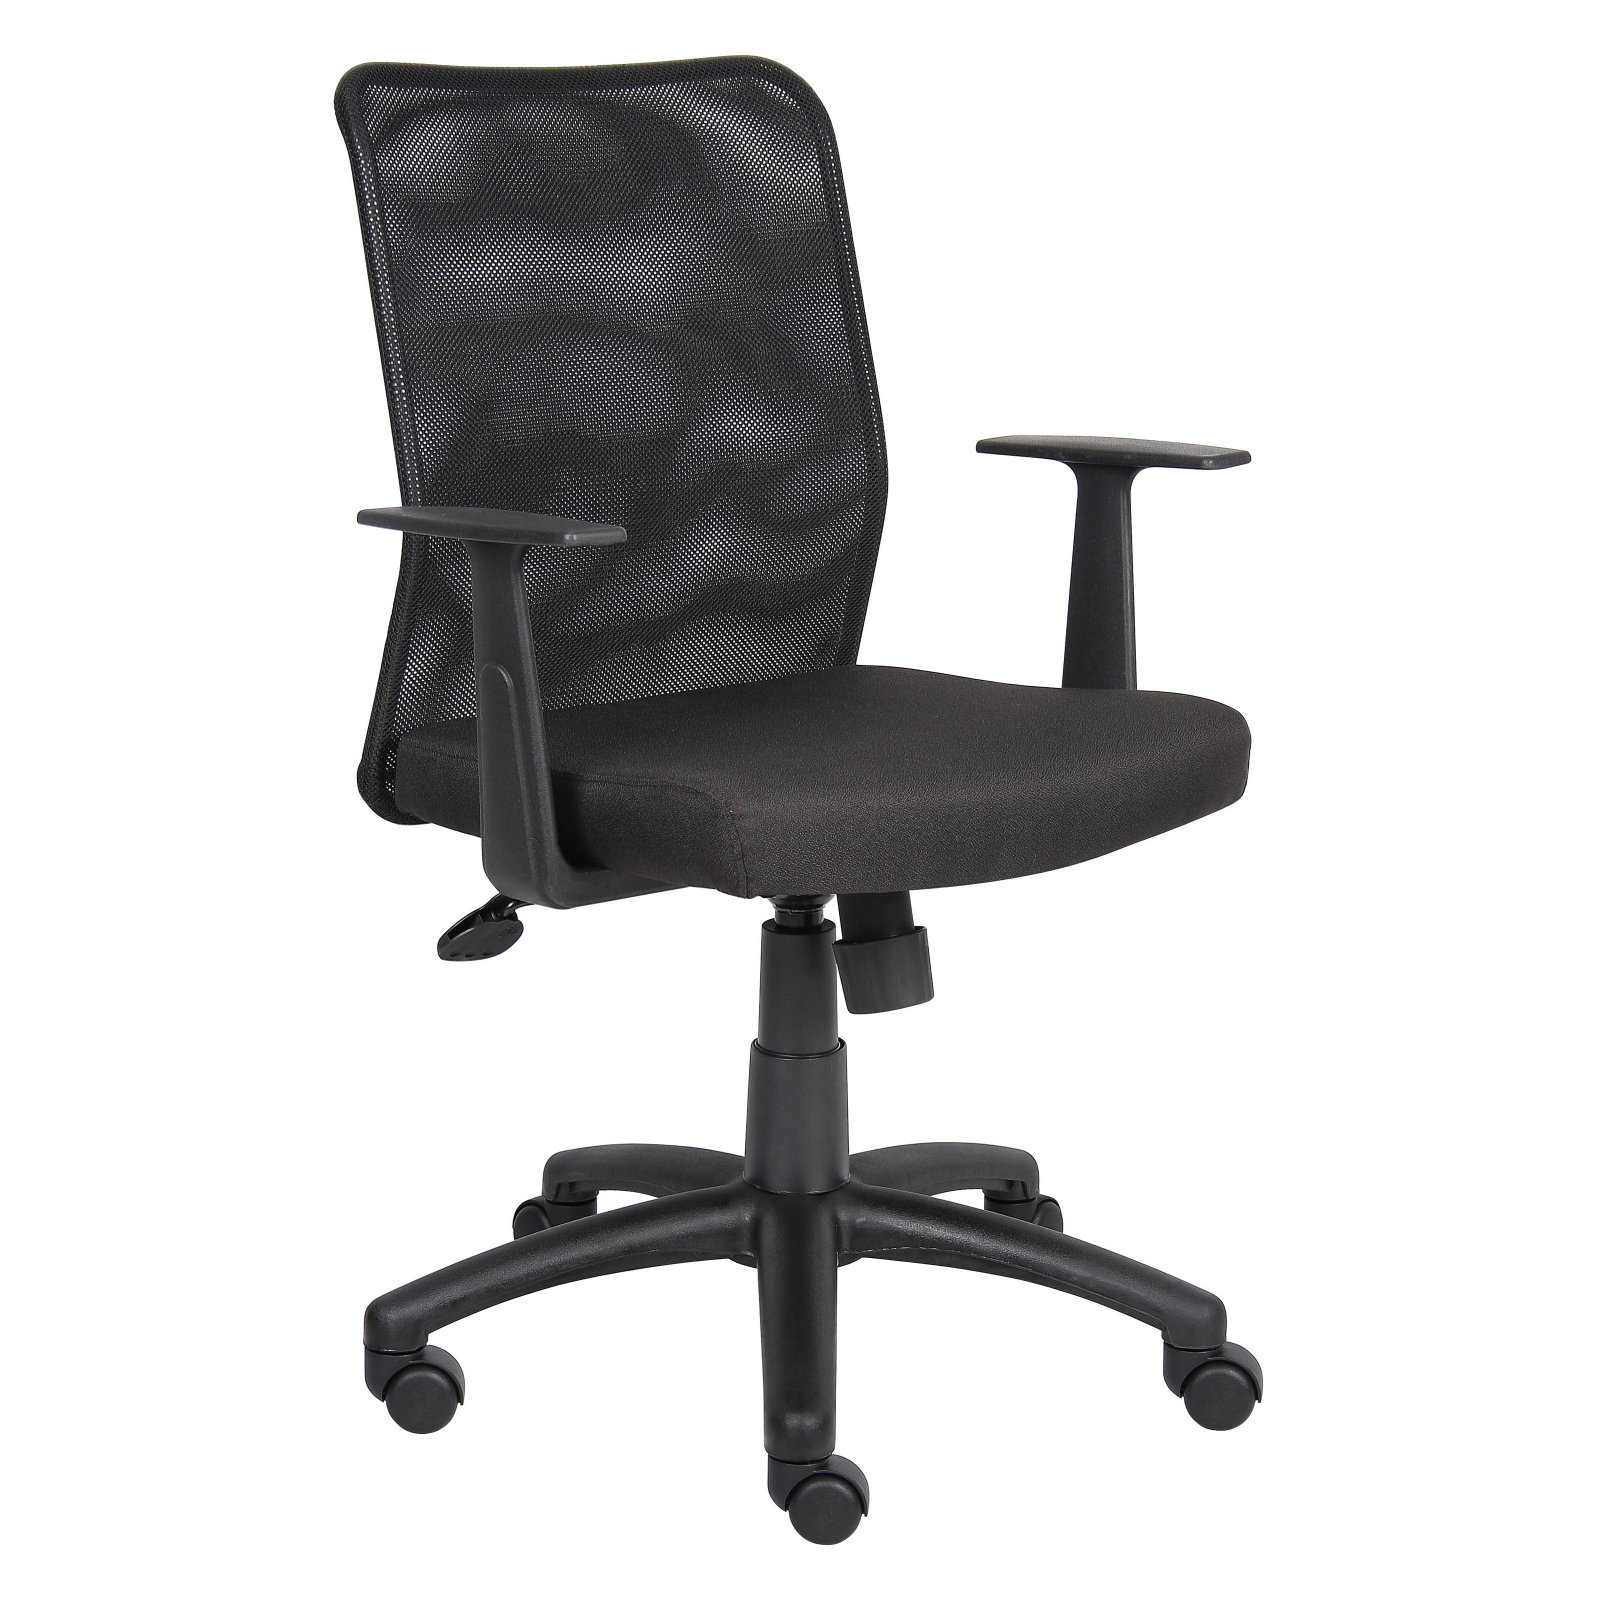 Mesh Back Office Chair with T-Arms